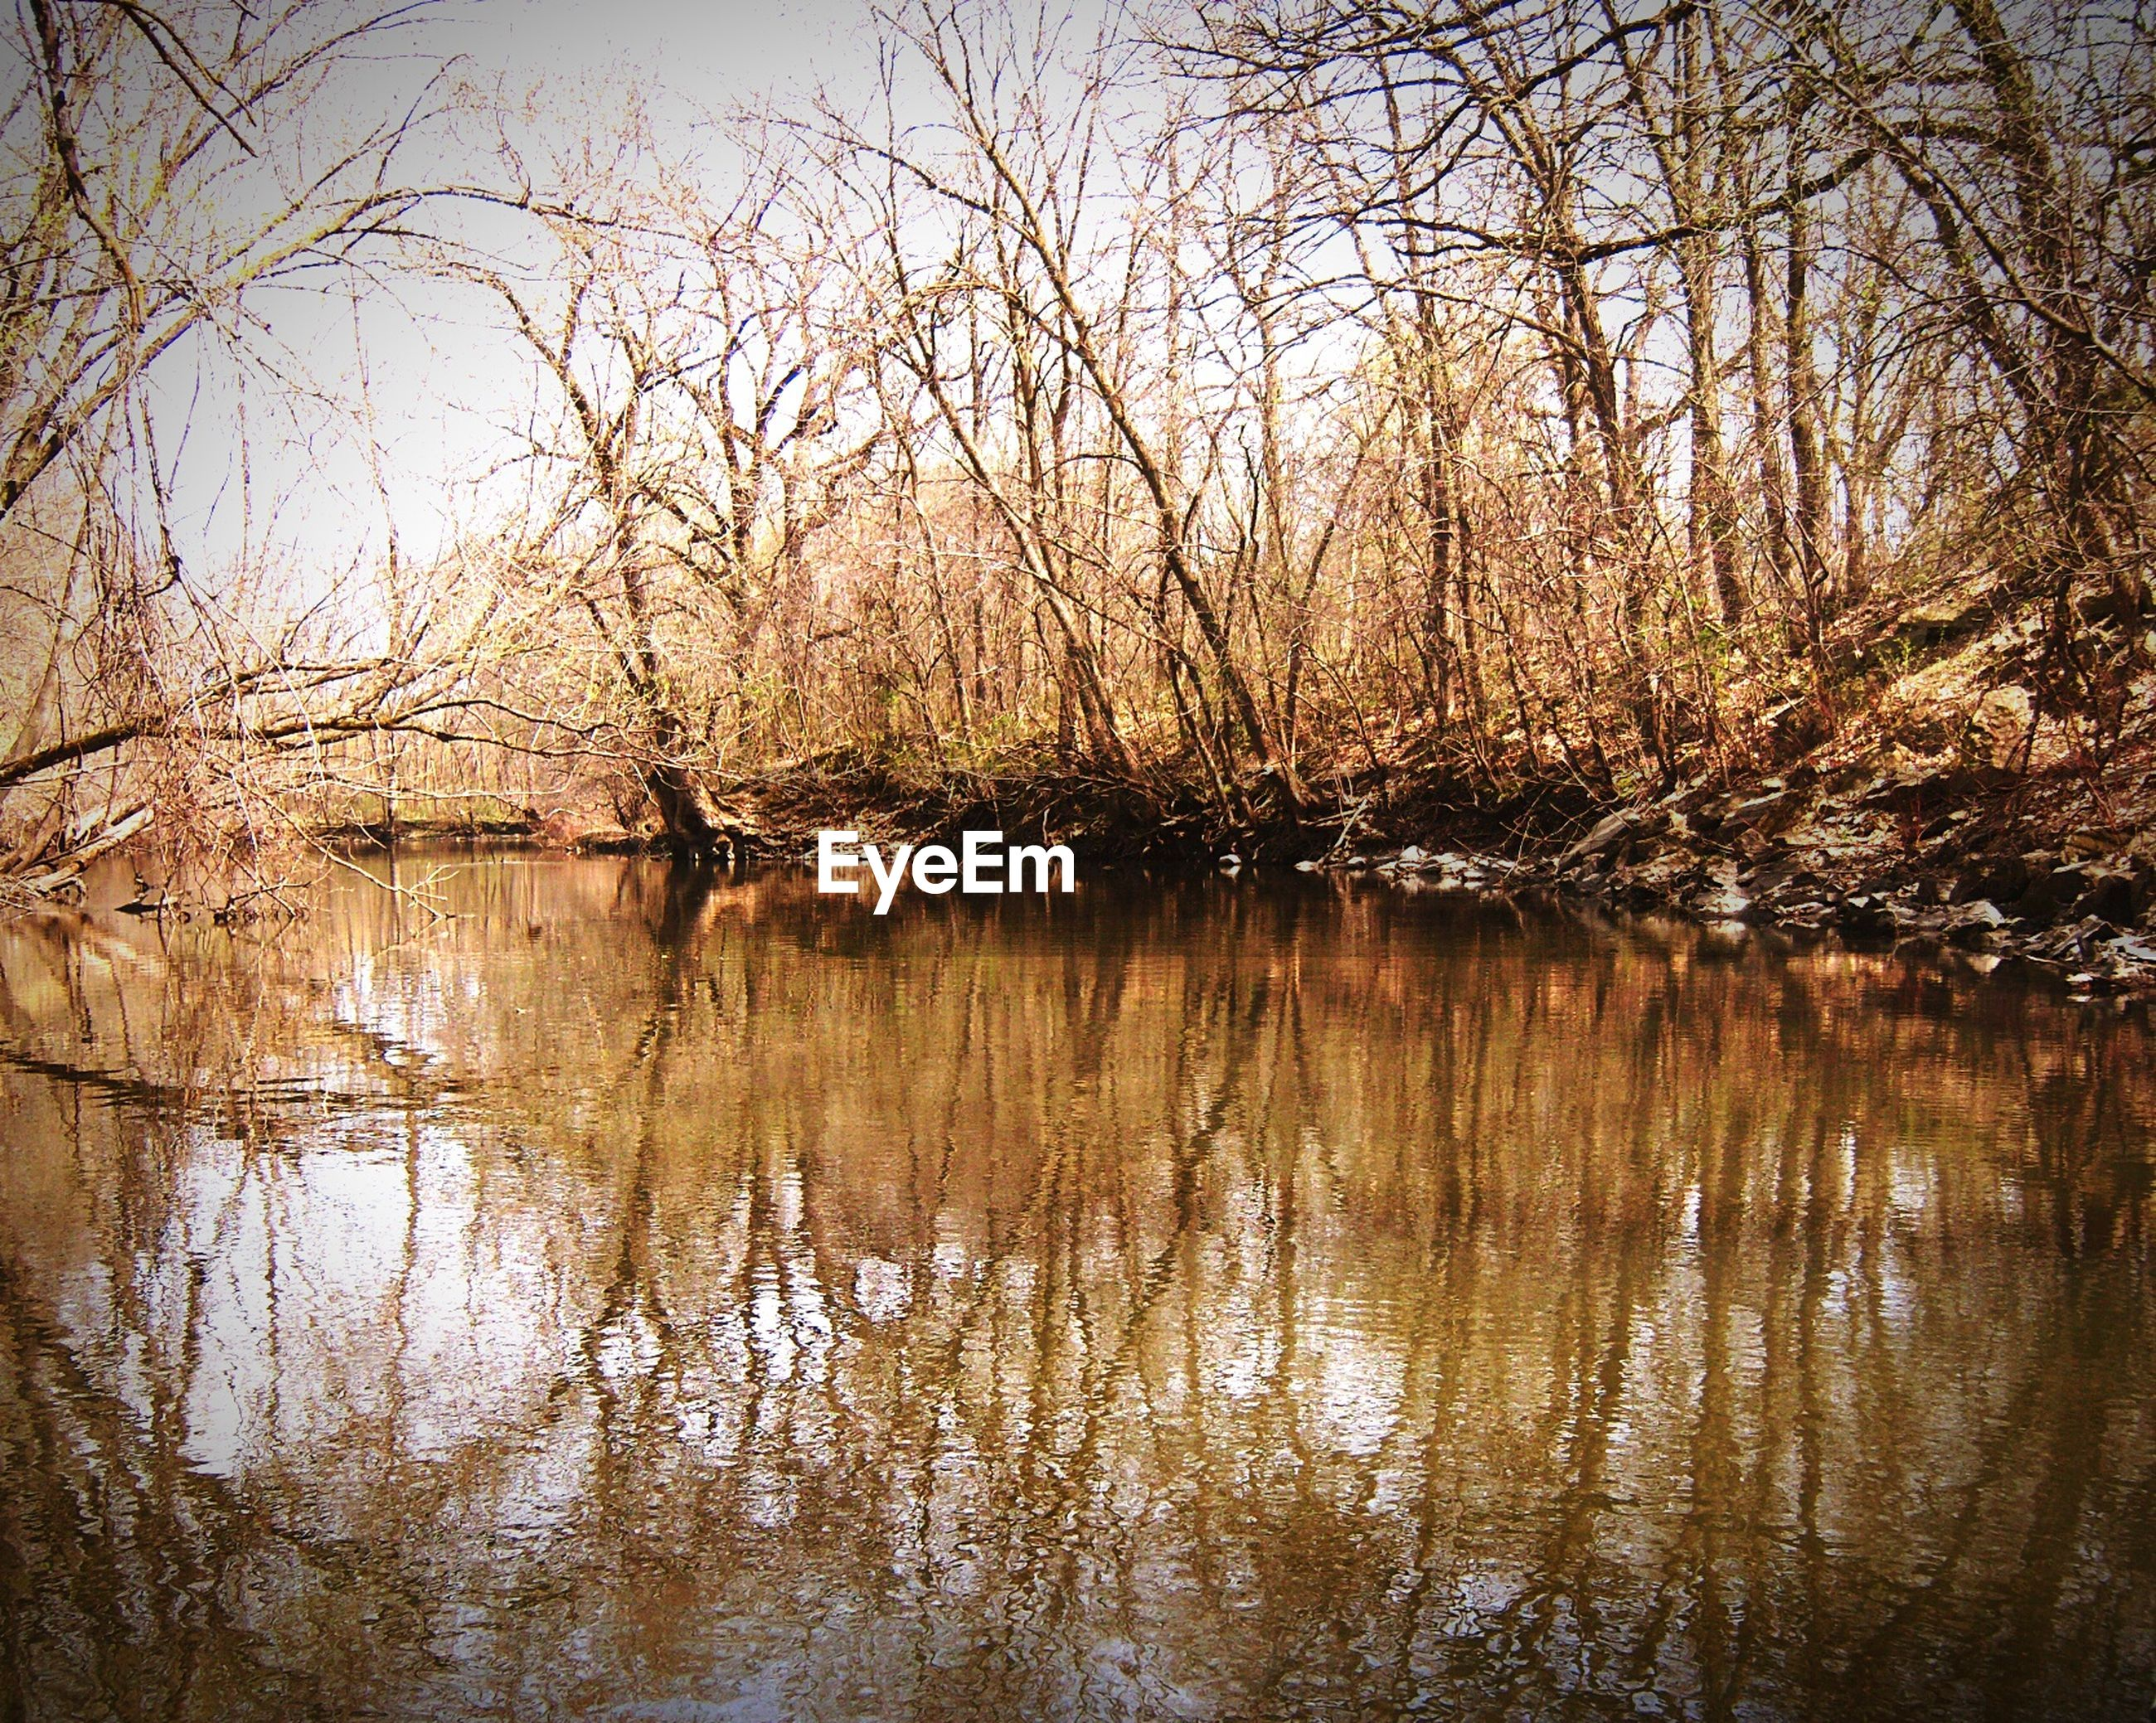 River by bare trees in forest